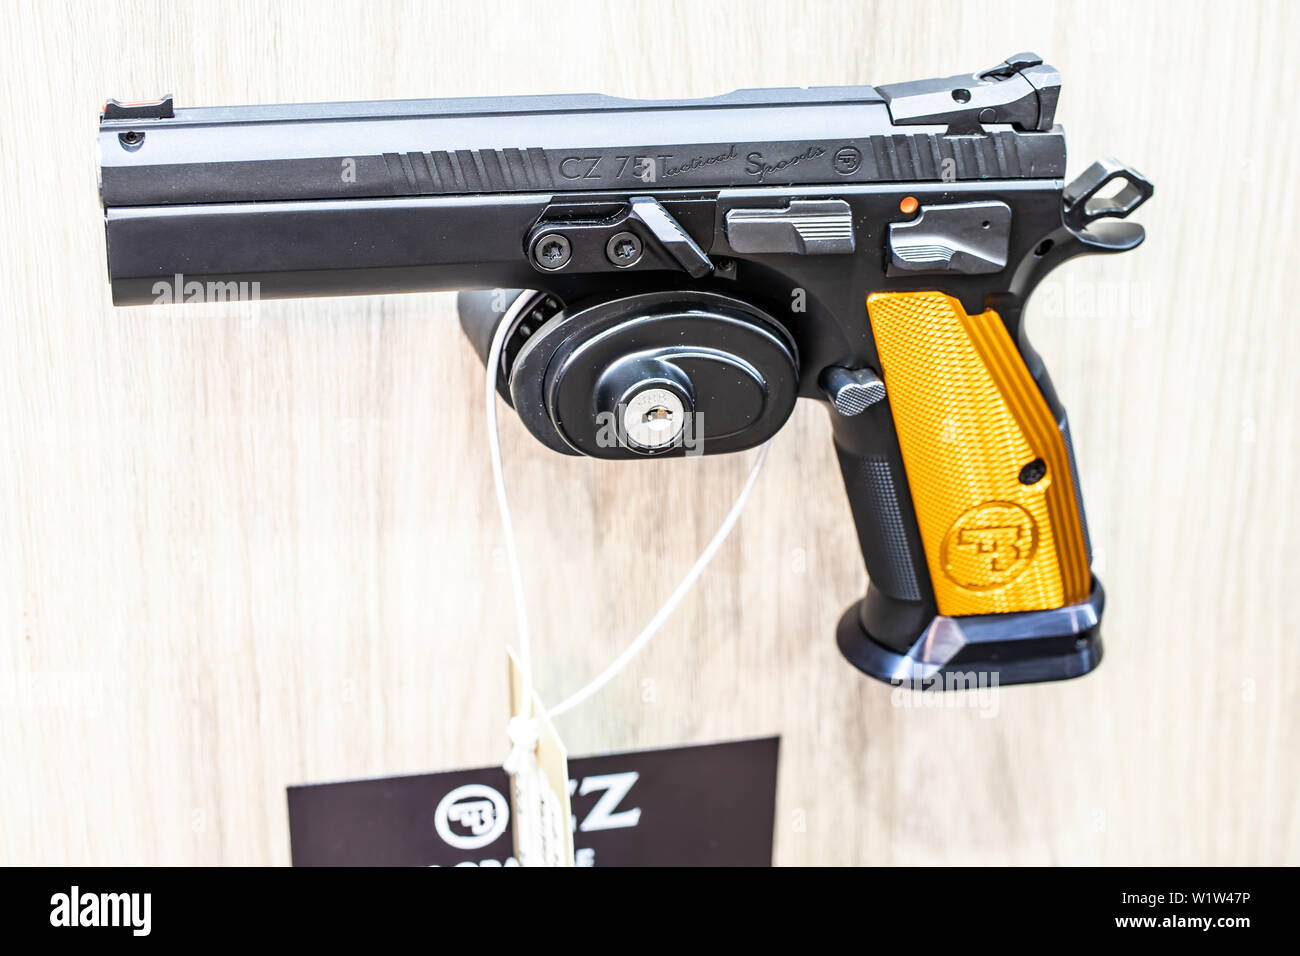 Cz 75 Stock Photos & Cz 75 Stock Images - Alamy